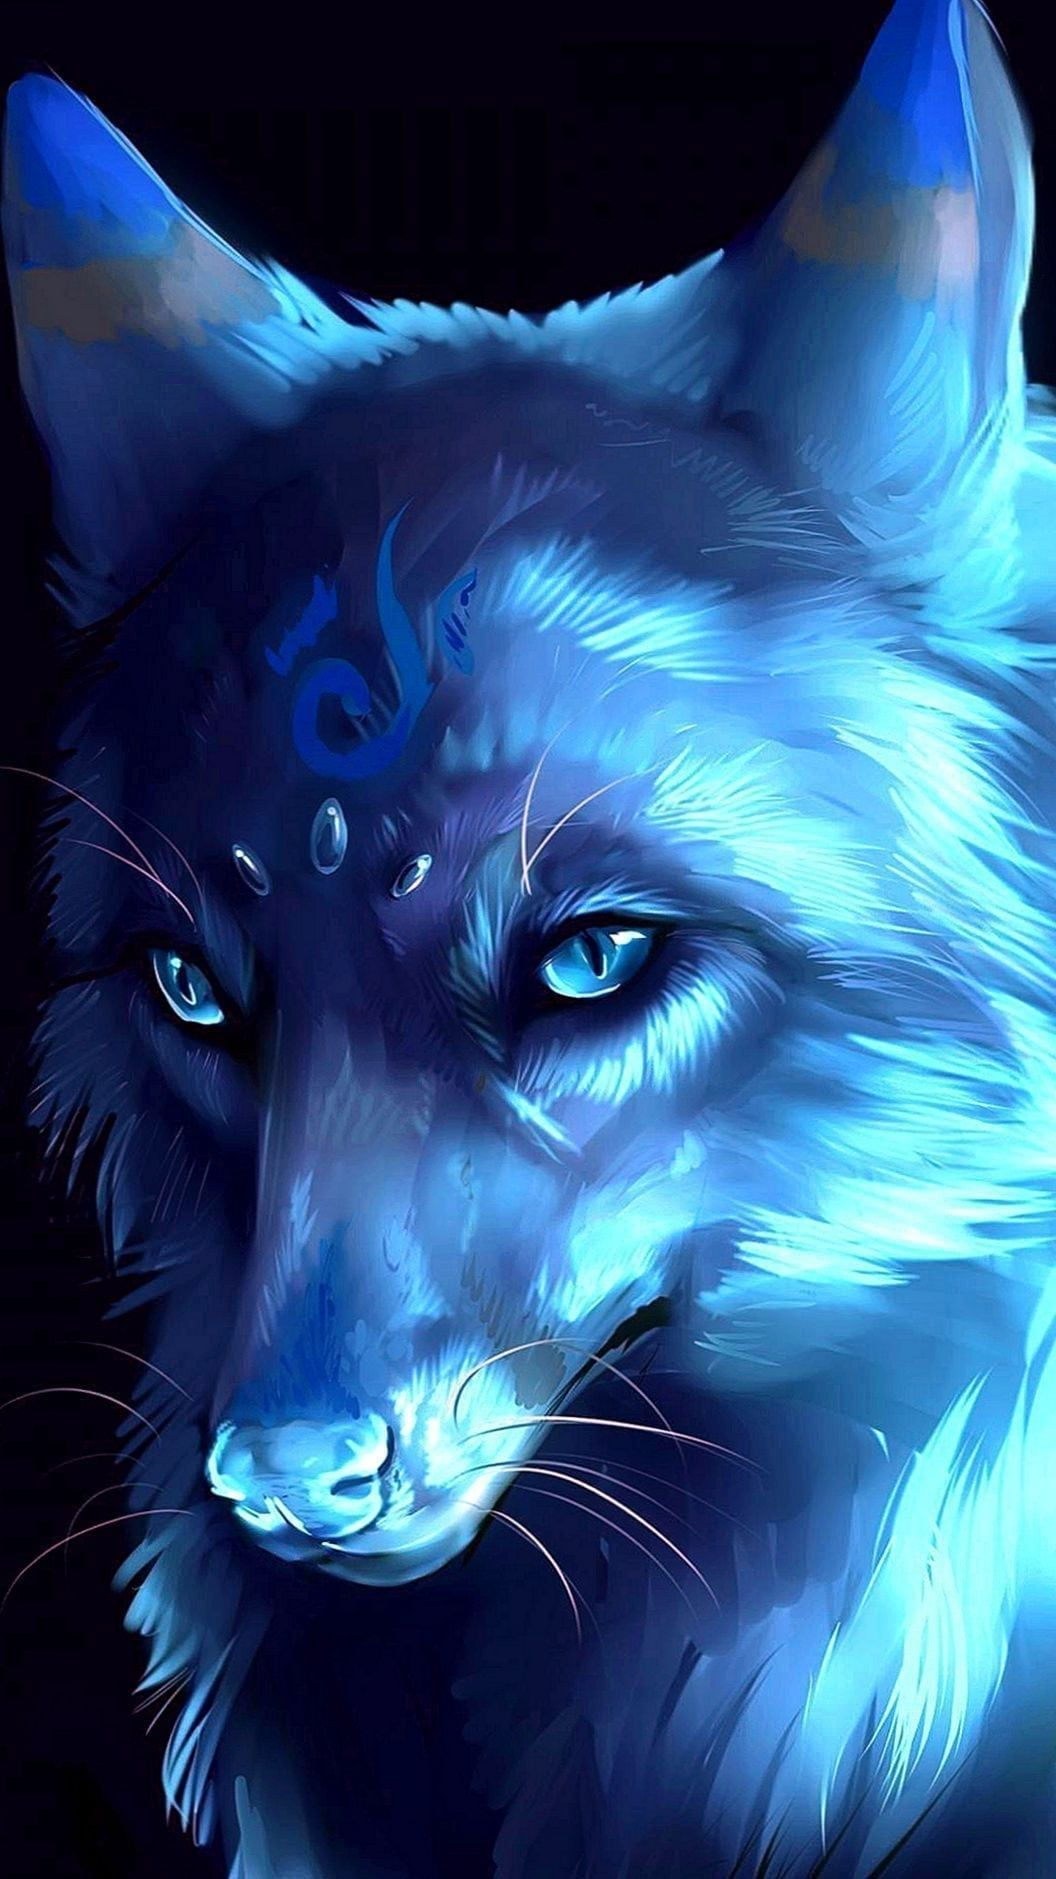 Anime Wolf Phone Wallpapers (With images) Fantasy wolf